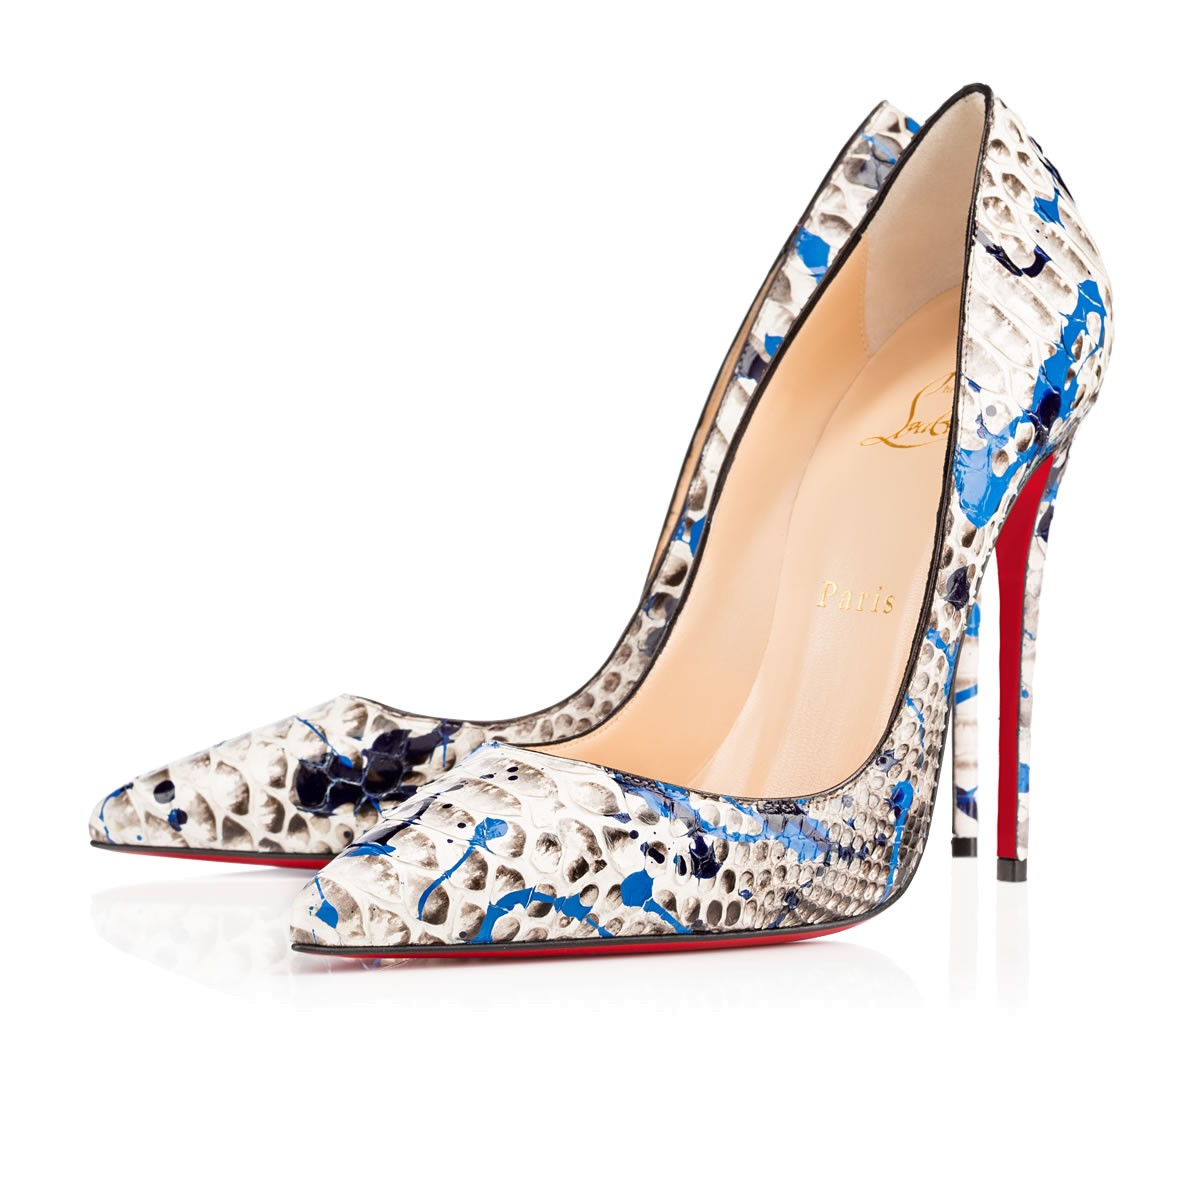 sneaker replicas - Christian louboutin So Kate Python Vulcano Pumps in Blue | Lyst